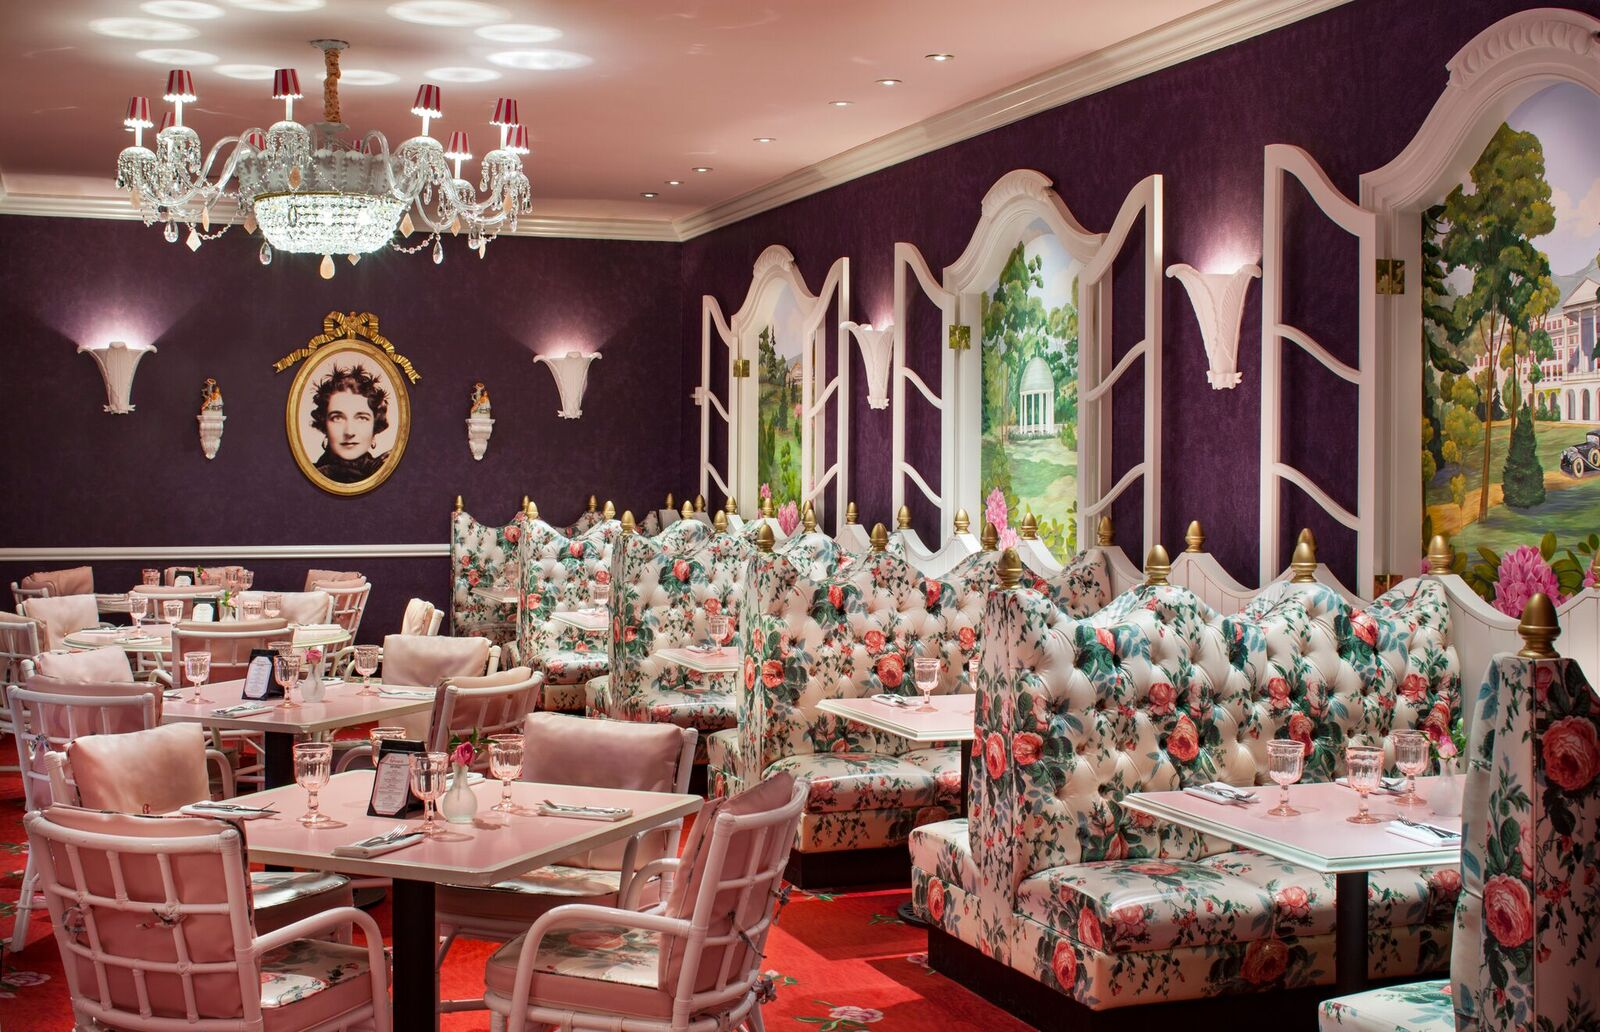 One of the dining options, Draper's, pays tribute to interior decorator Dorothy Draper, who is pictured on the wall.{ }(Image: Courtesy The Greenbrier)